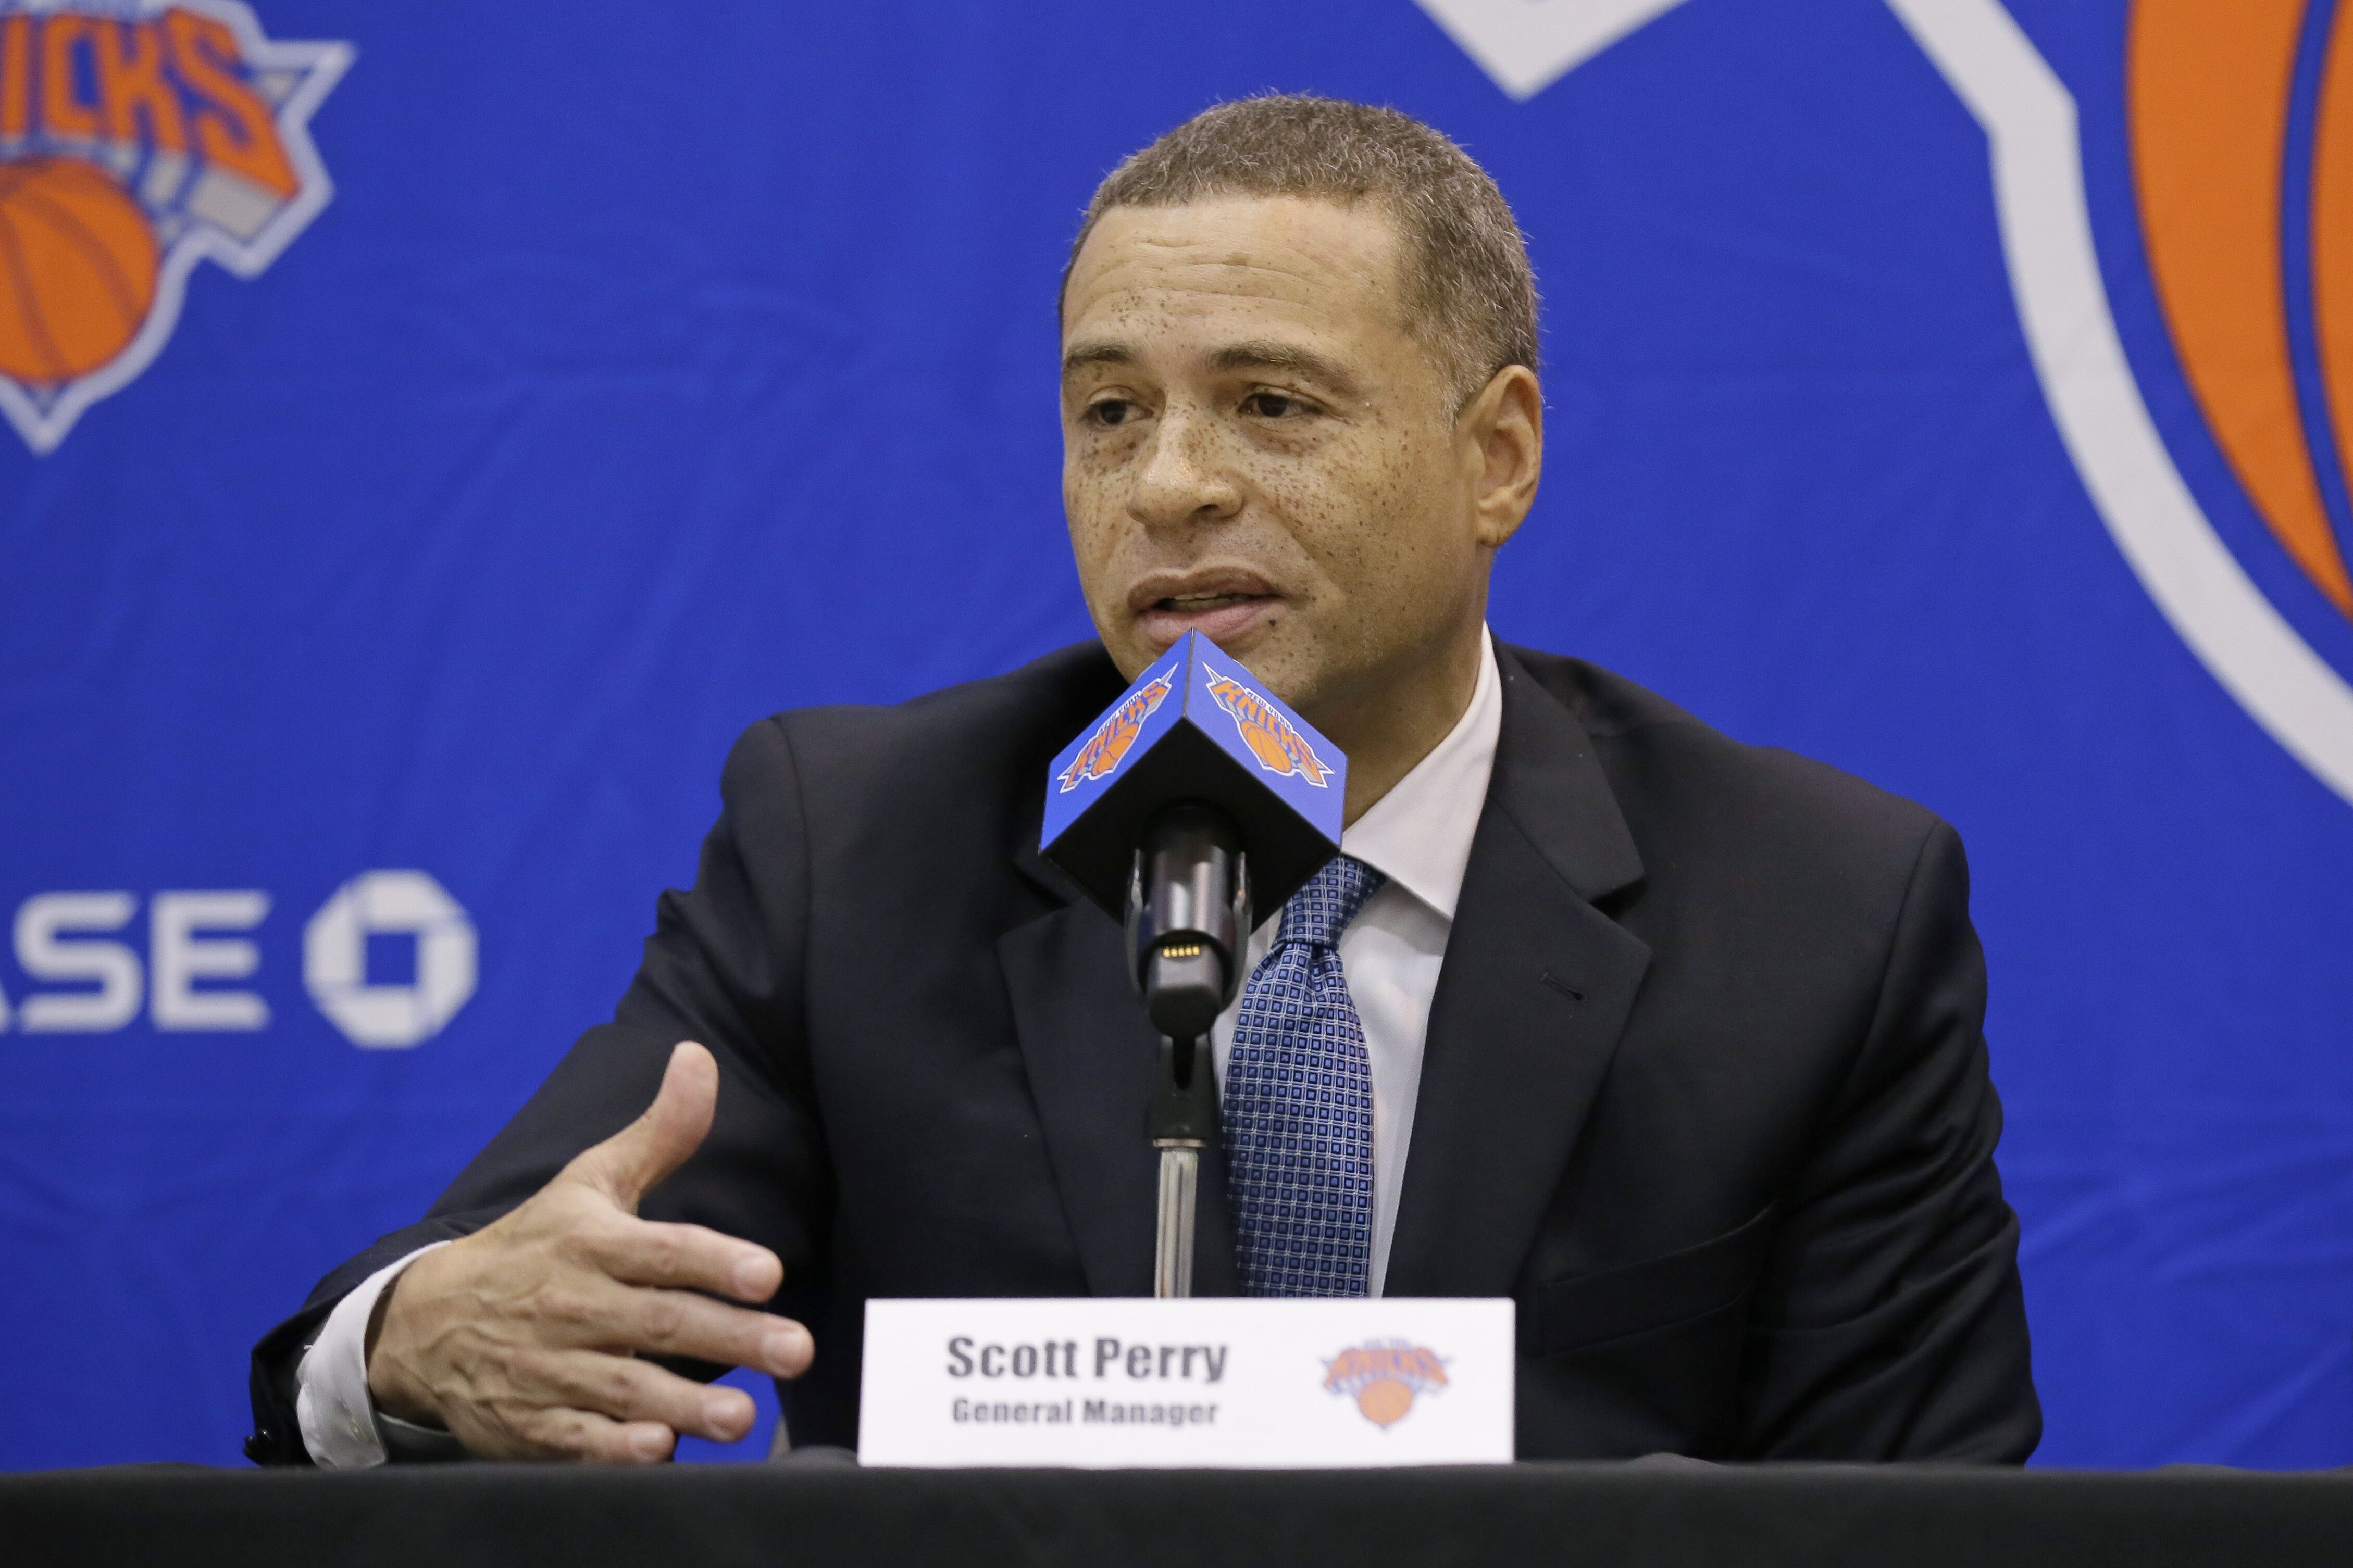 816449526-new-york-knicks-introduce-scott-perry-as-general-manager.jpg